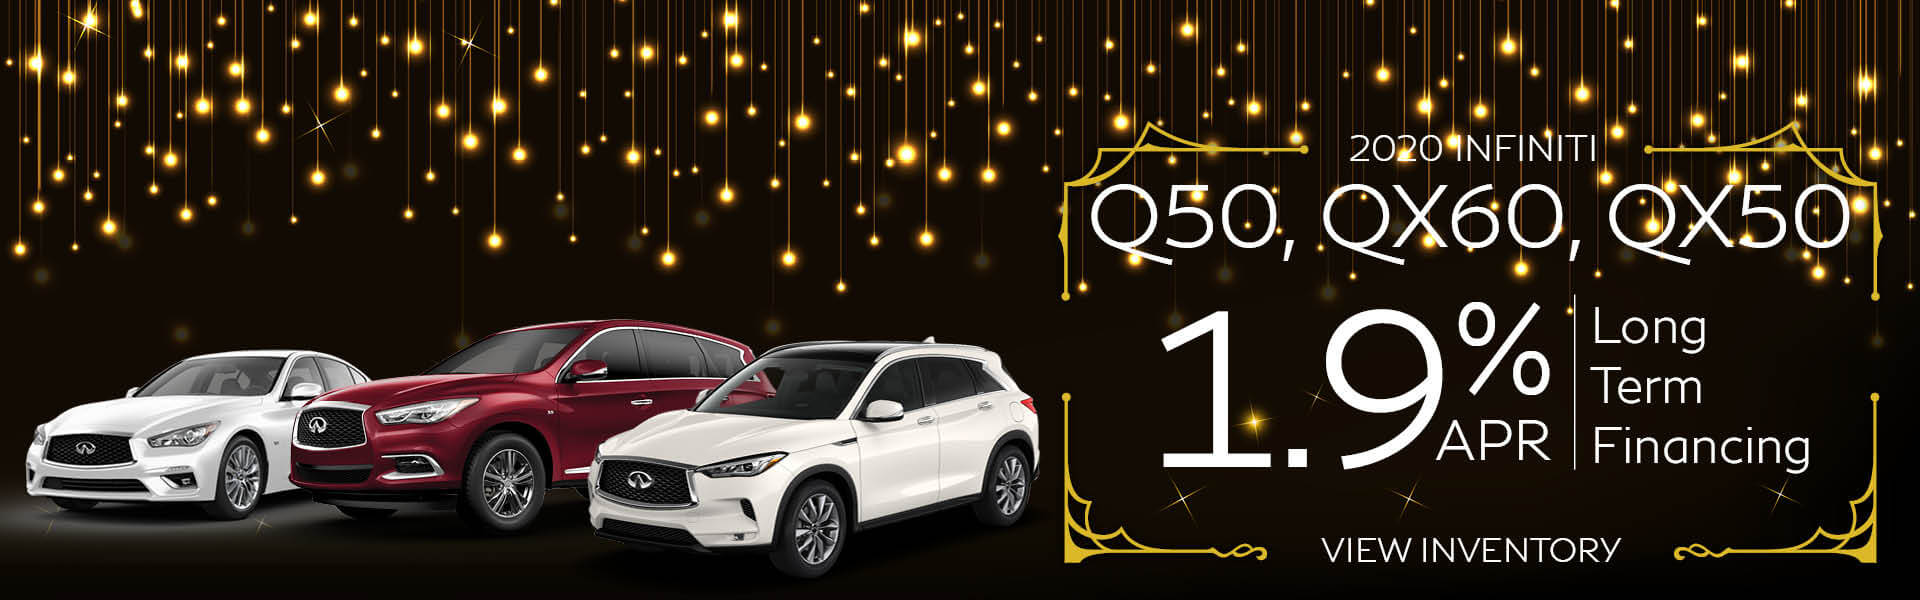 Q50 1.9% APR Available